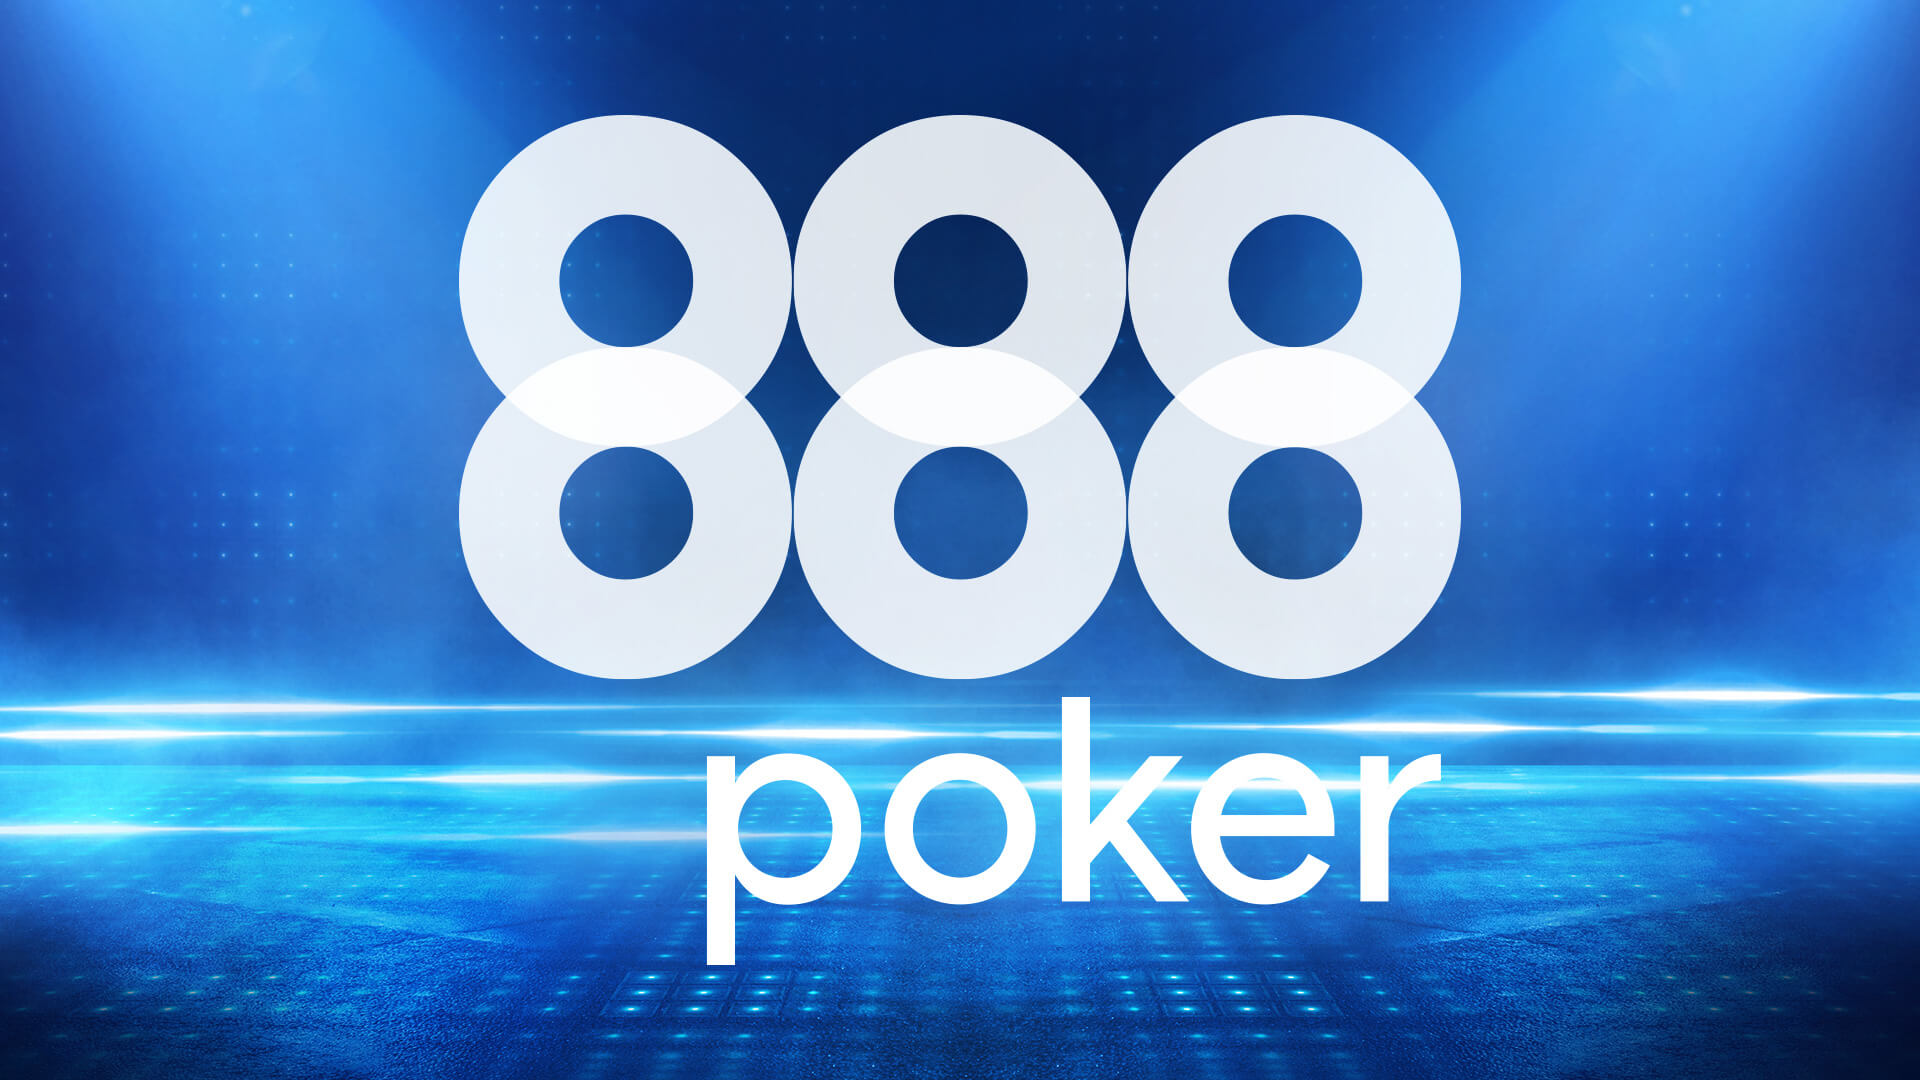 New Client Leads to Big Poker Growth for 888poker